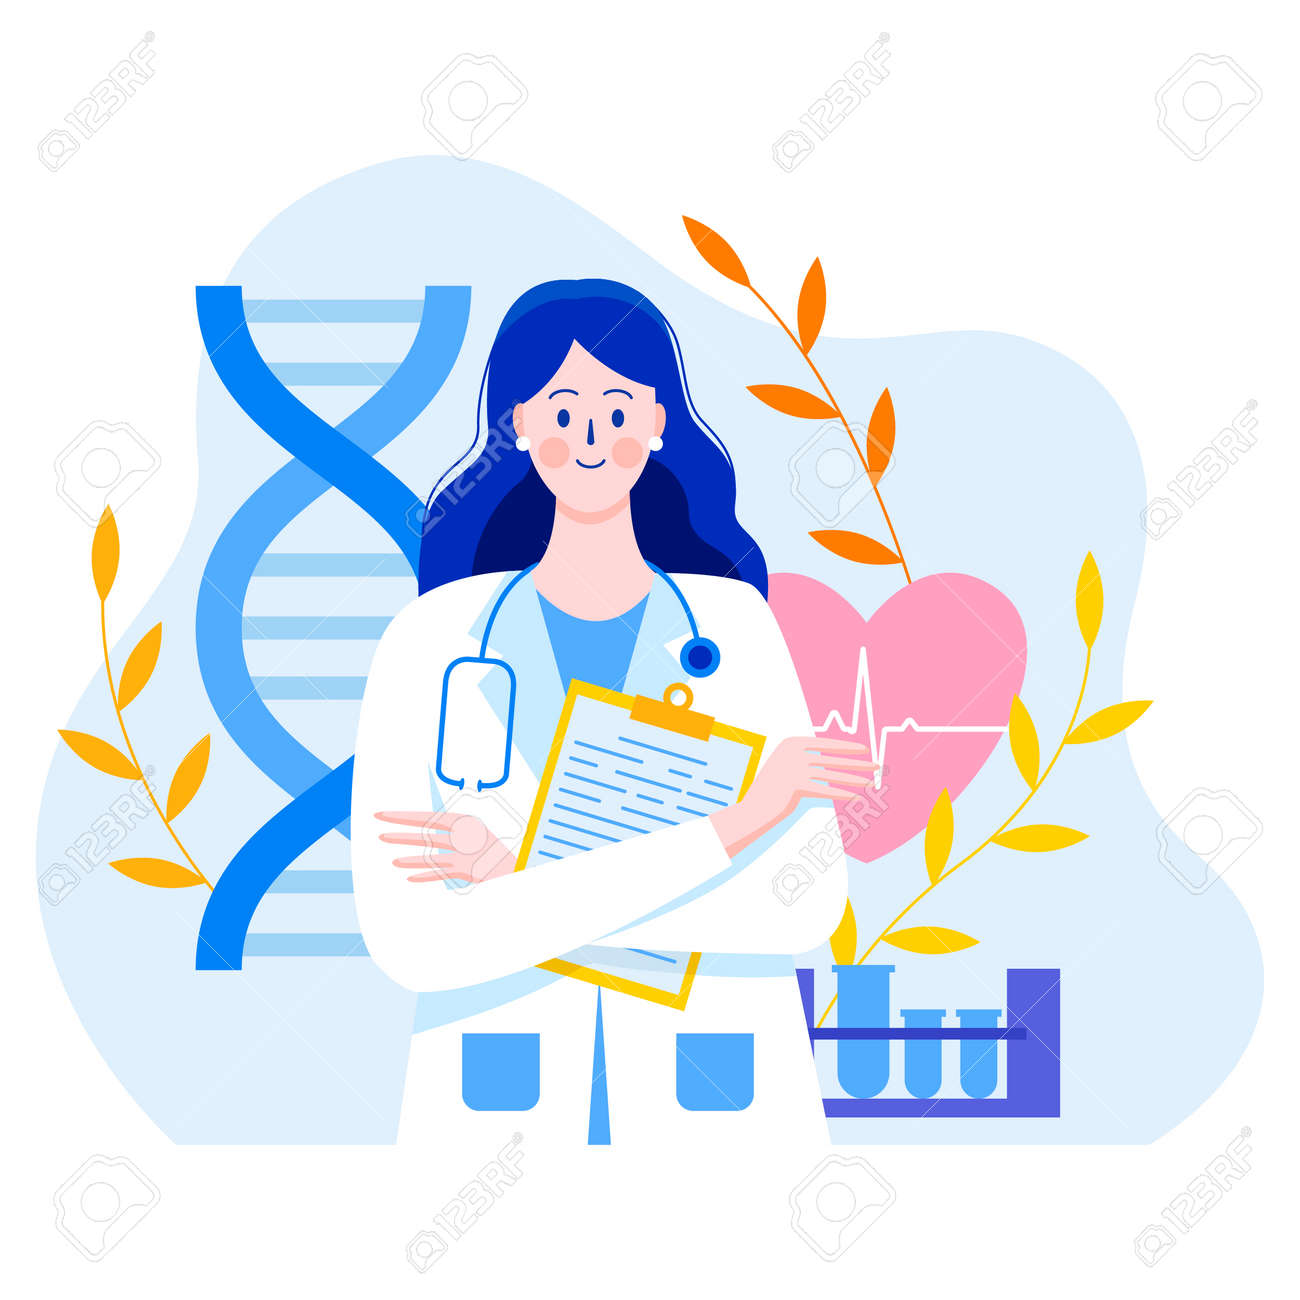 Medicine concept with a doctor in thin style. Practicing young doctor woman with documents. In the background are medical elements. Test tubes, heart, cardiogram, DNA, leaves. Consultations and diagnostics. - 152858009